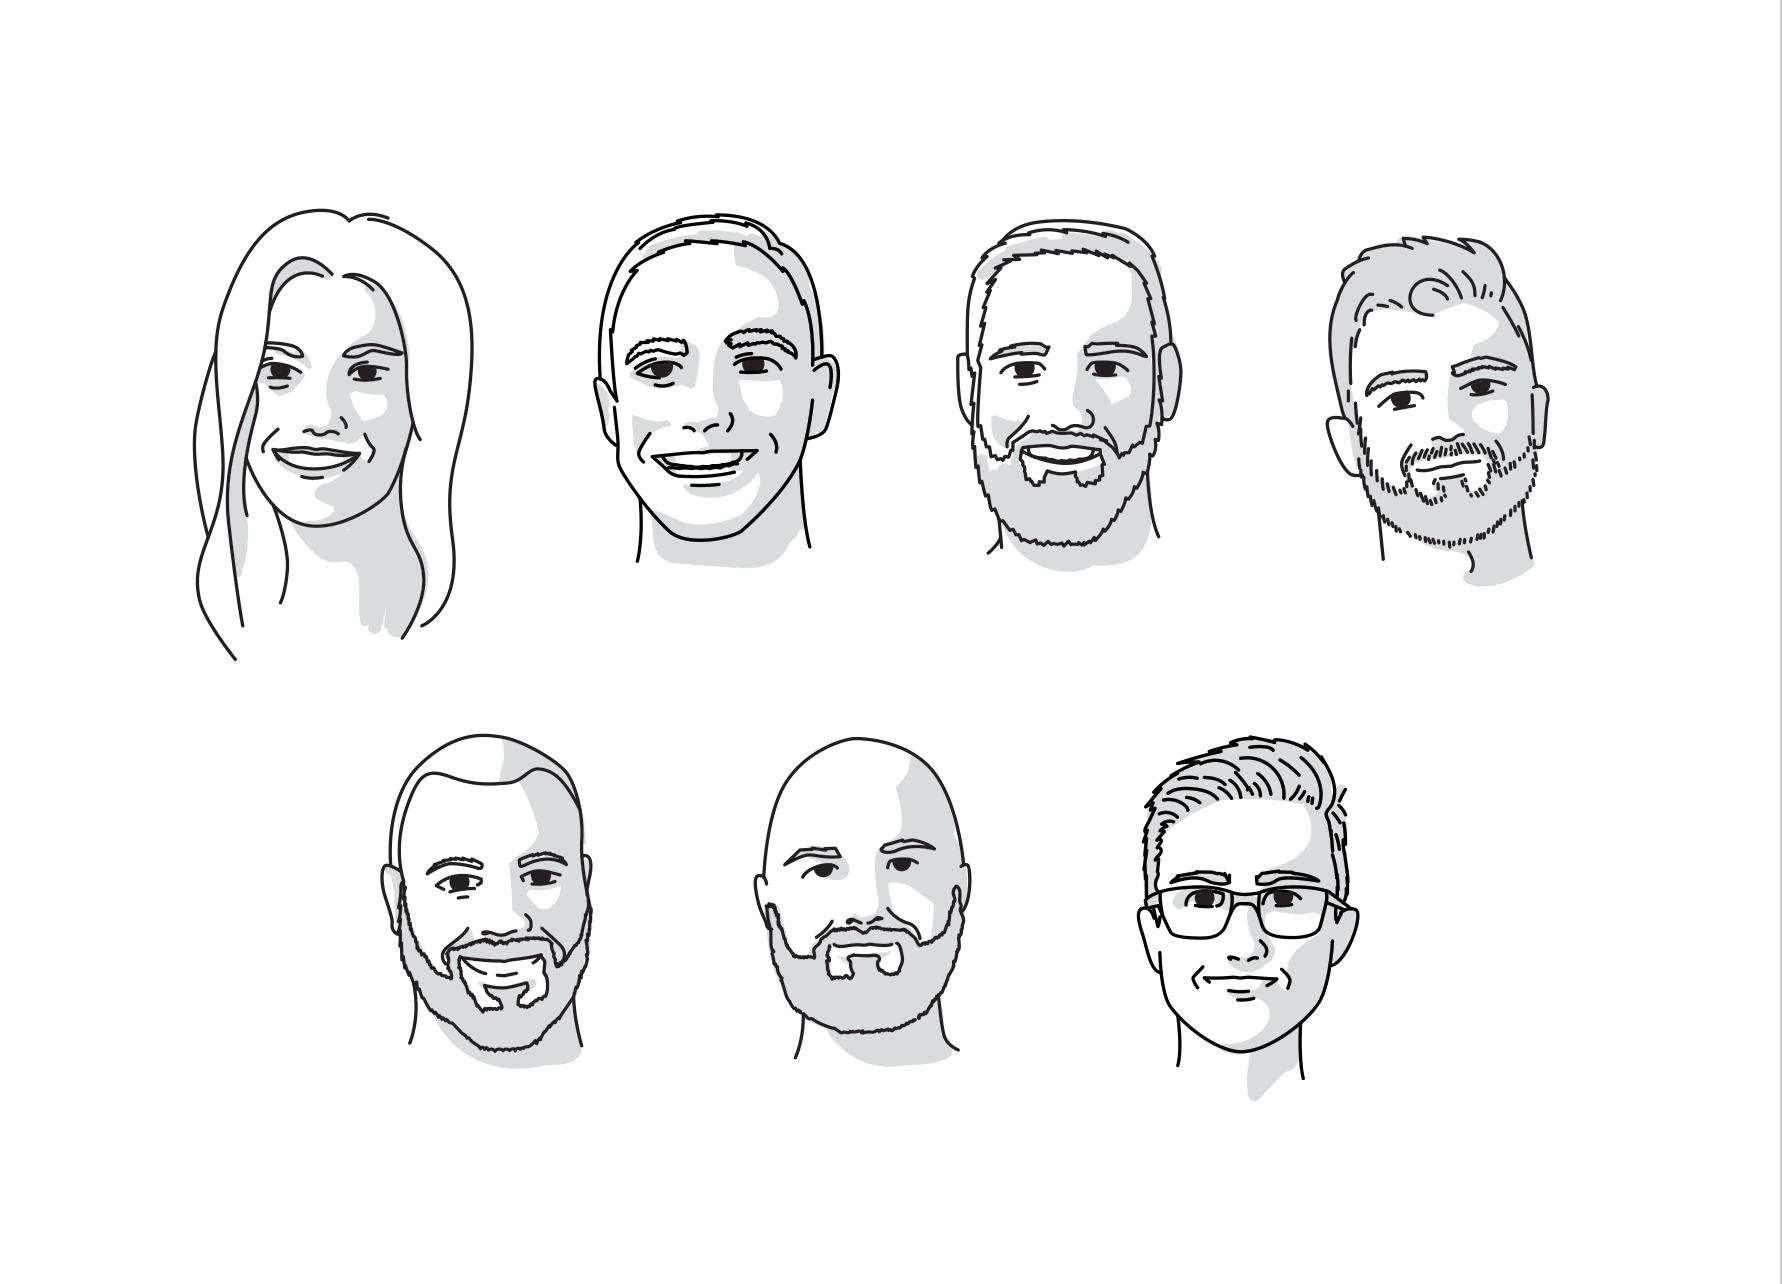 Simple line-driven portraits of seven former Brunch Digital employees